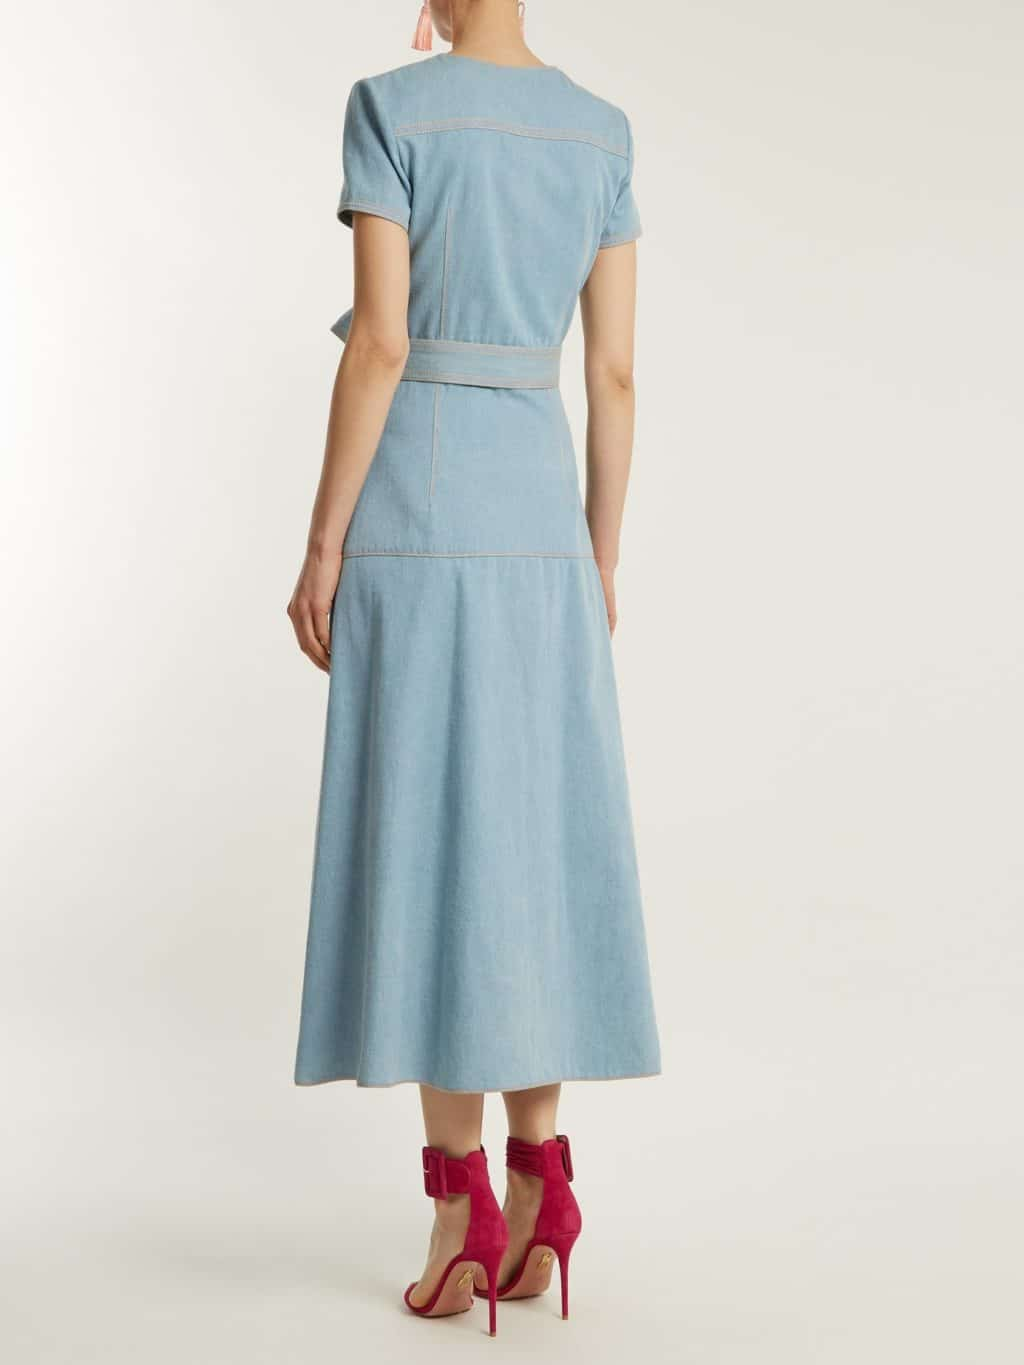 Carolina Herrera Round Neck A Line Cotton Denim Powder Blue Dress